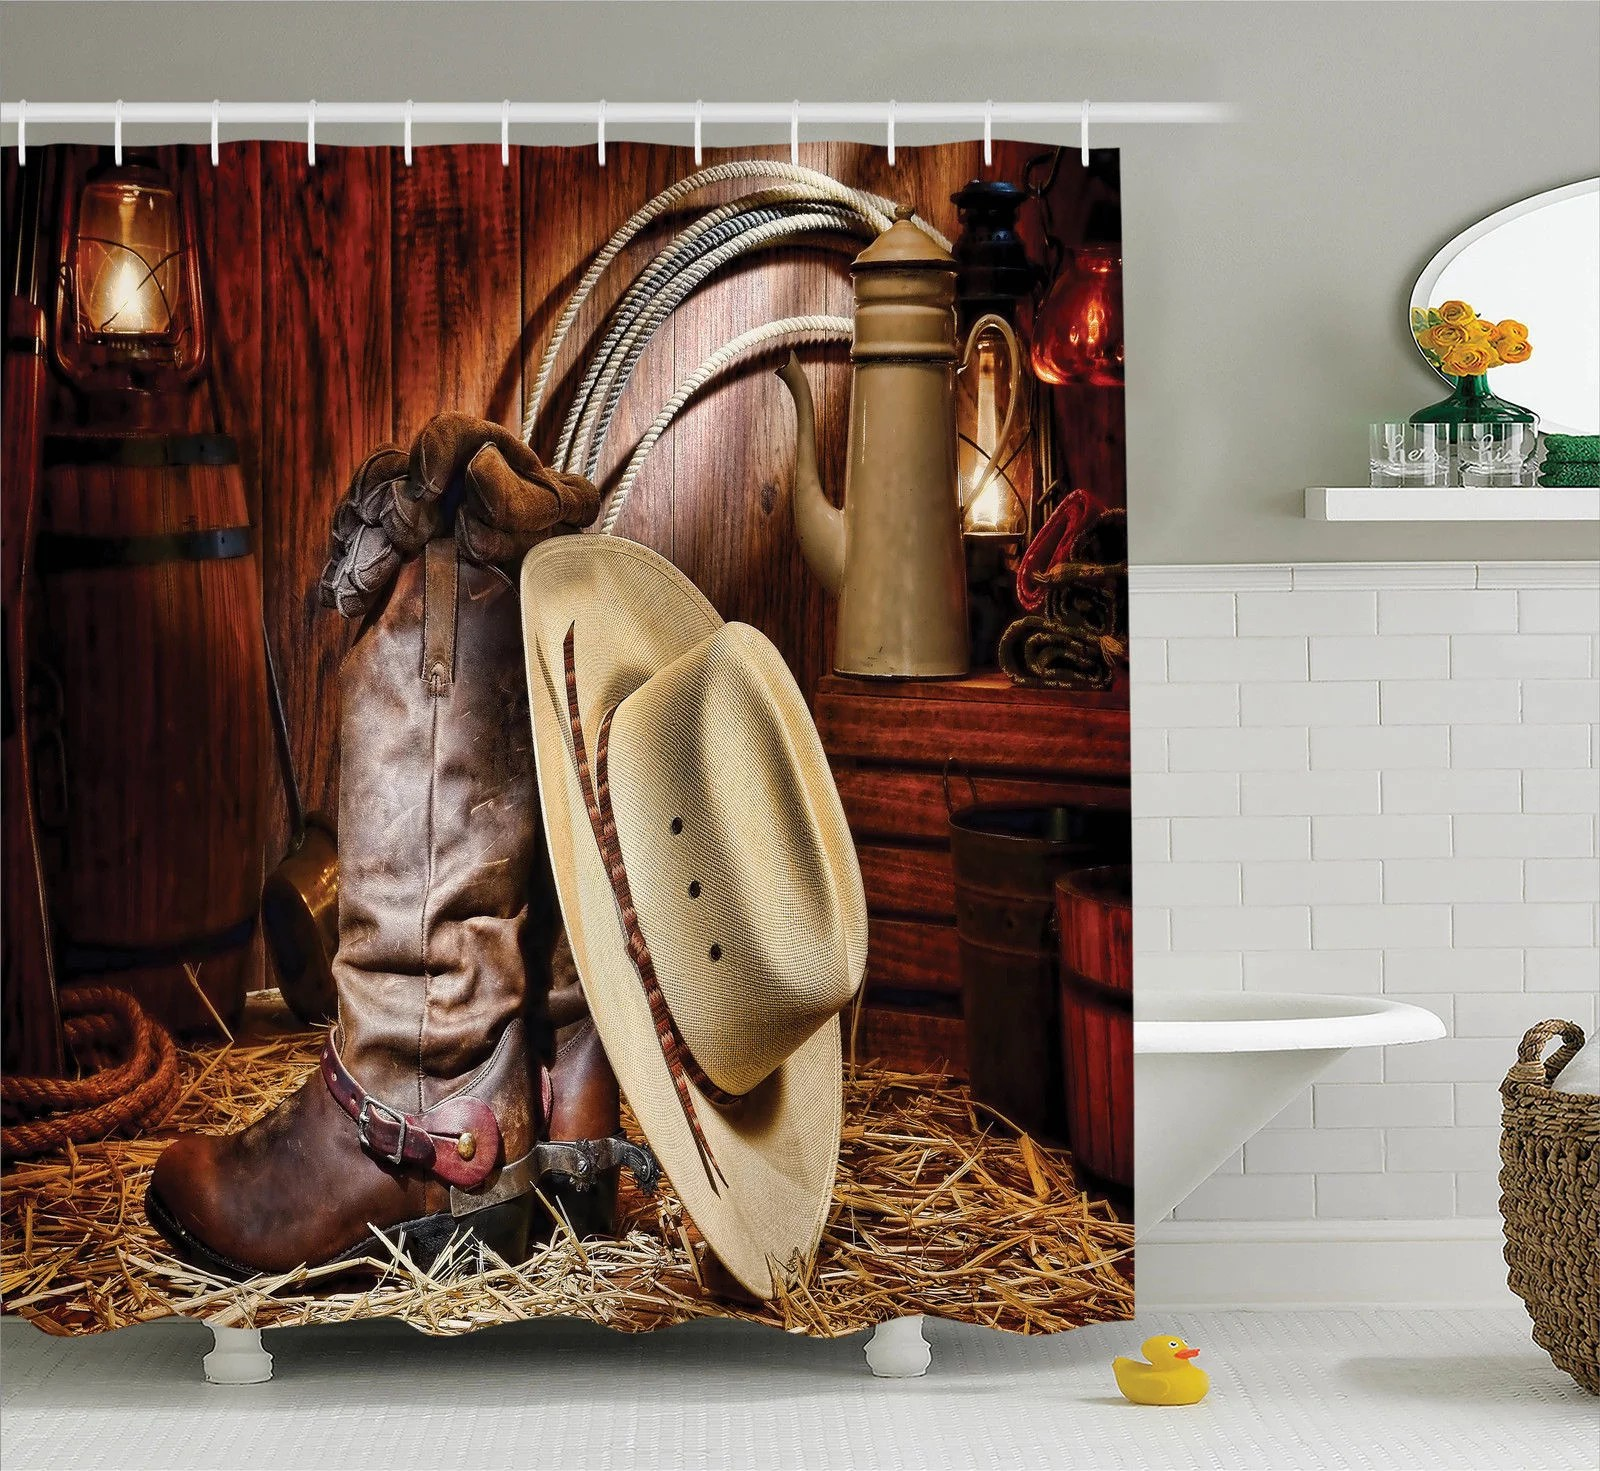 western decor shower curtain set authentic american west rodeo elements with antique ranching supplies retro art photo bathroom accessories 69w x